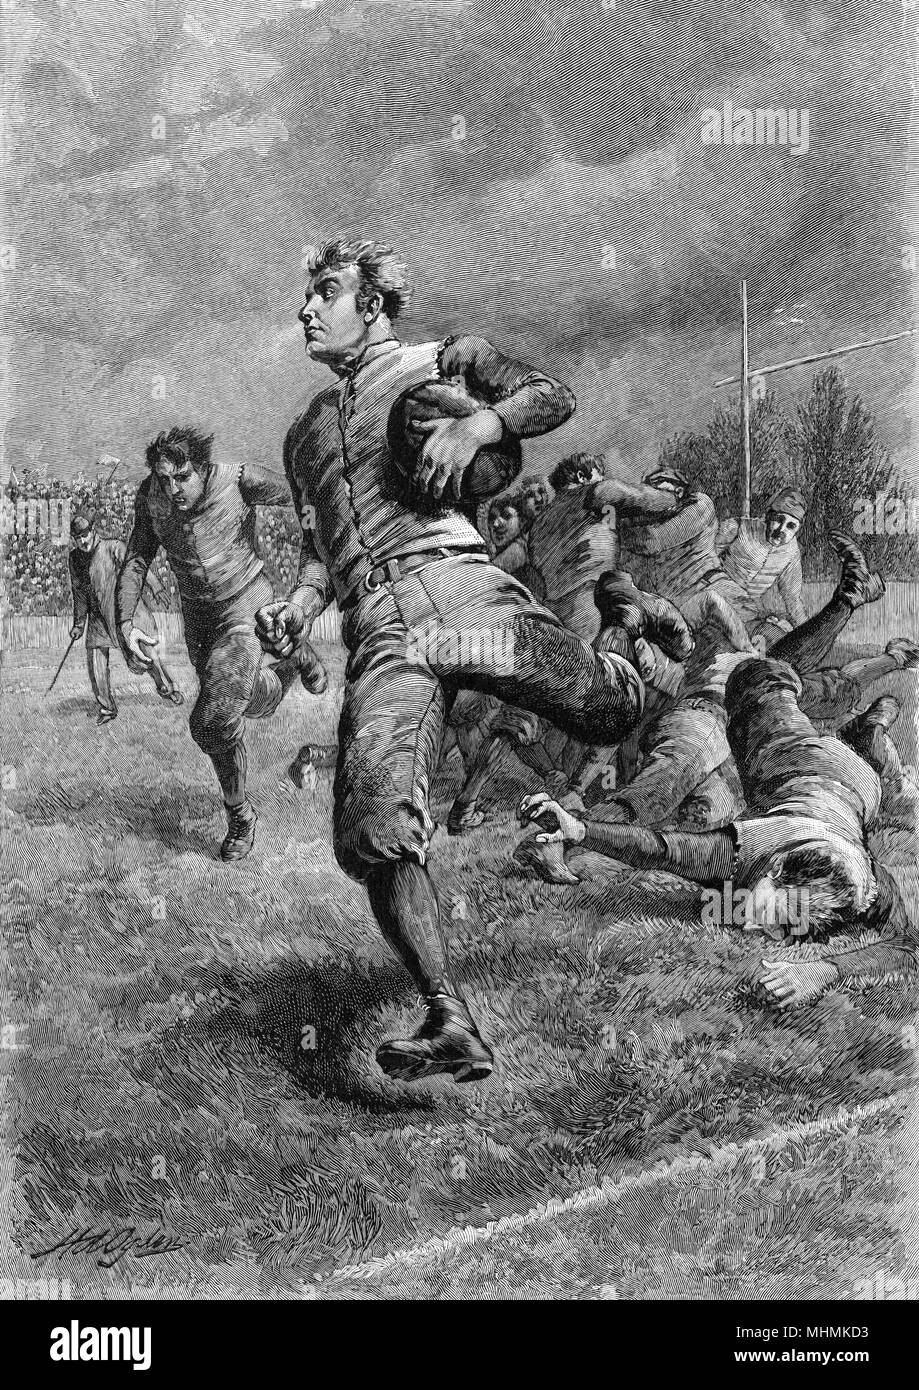 Clutching the ball under his arm, a player sprints for the line as opponents try to intercept him.      Date: 1893 - Stock Image